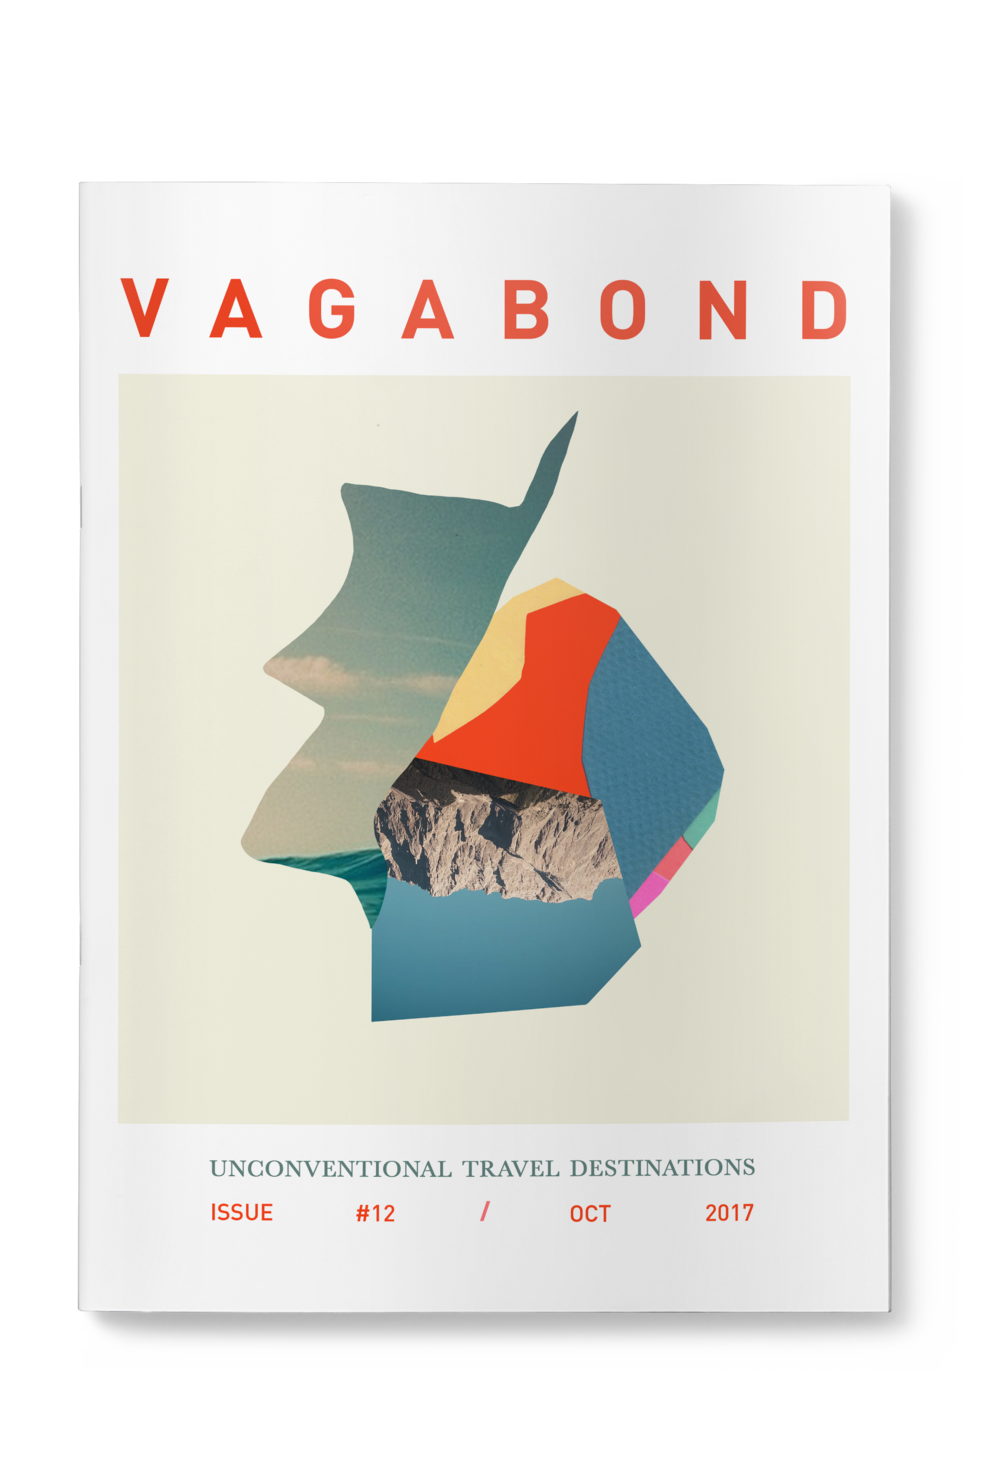 Vagabond - A practice in cover design, typography and layout for an unconventional travel magazine.